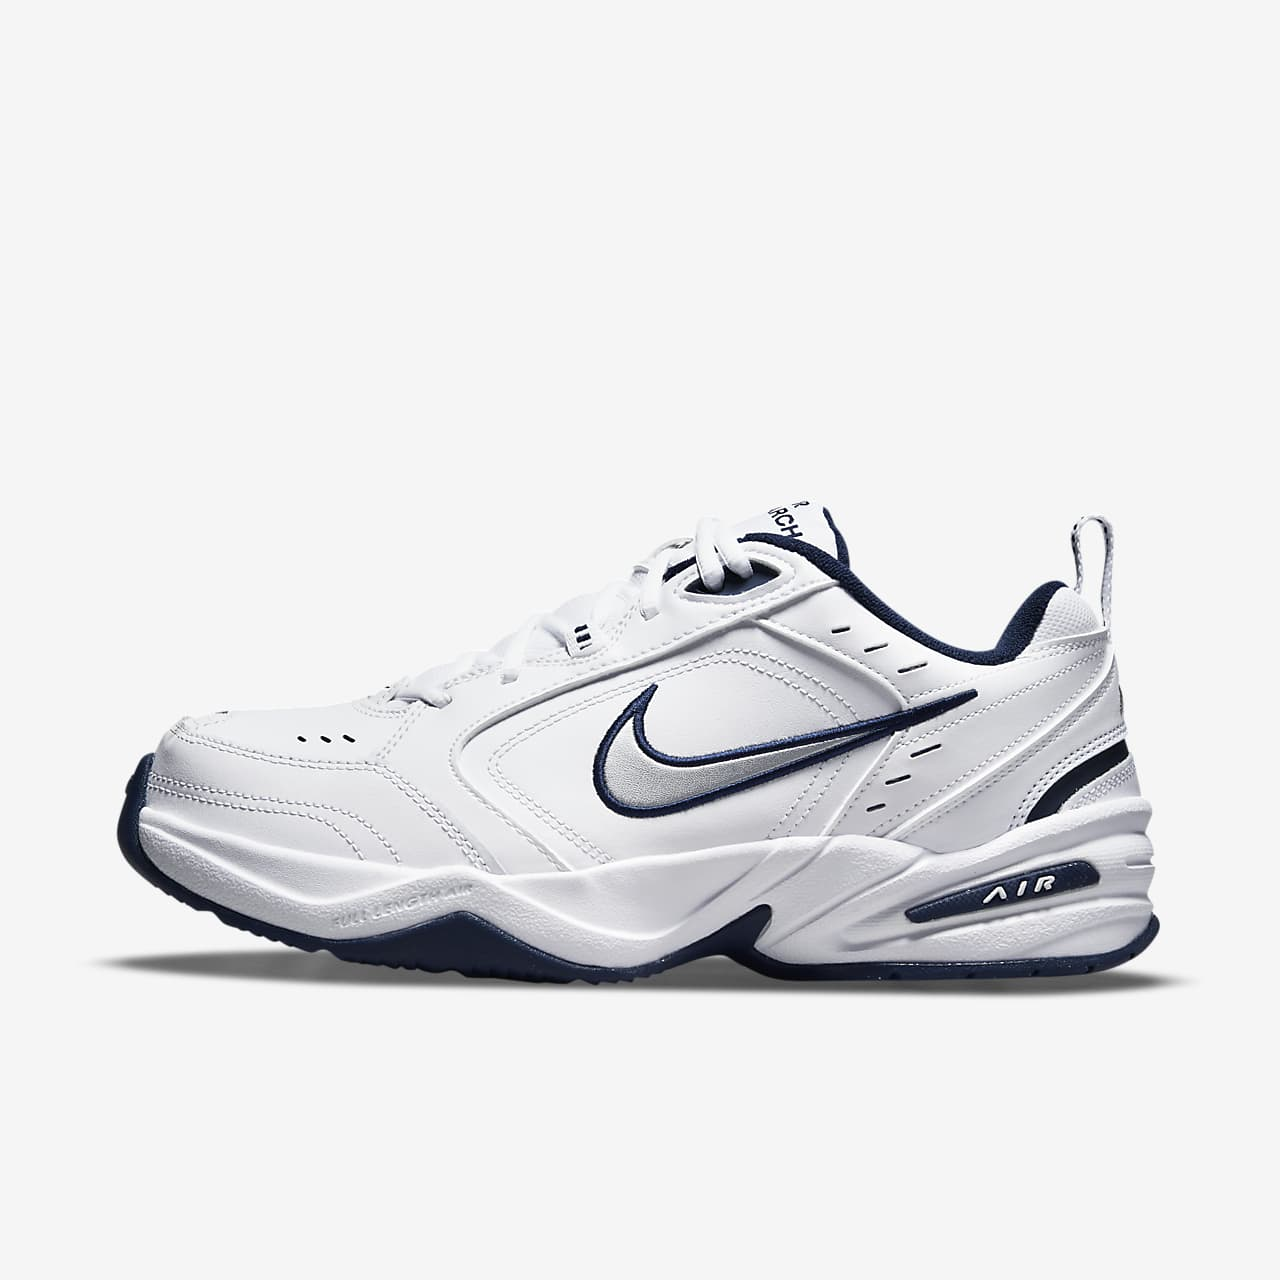 Nike Air Monarch IV Men's Training Shoe (Extra Wide)